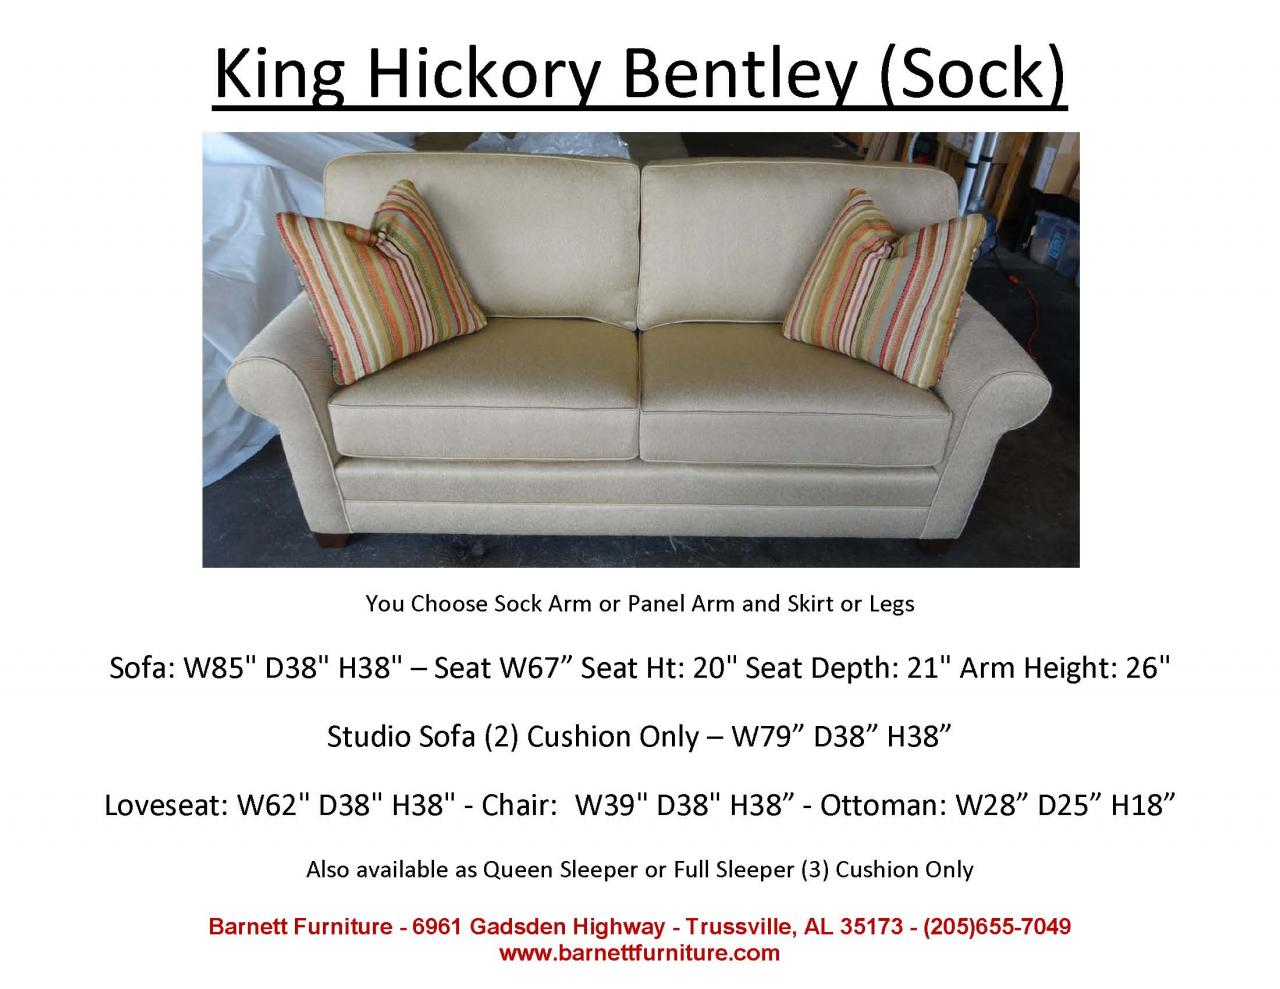 King Hickory Bentley Sofa With Sock Arm And Modern Leg 2 Cushion